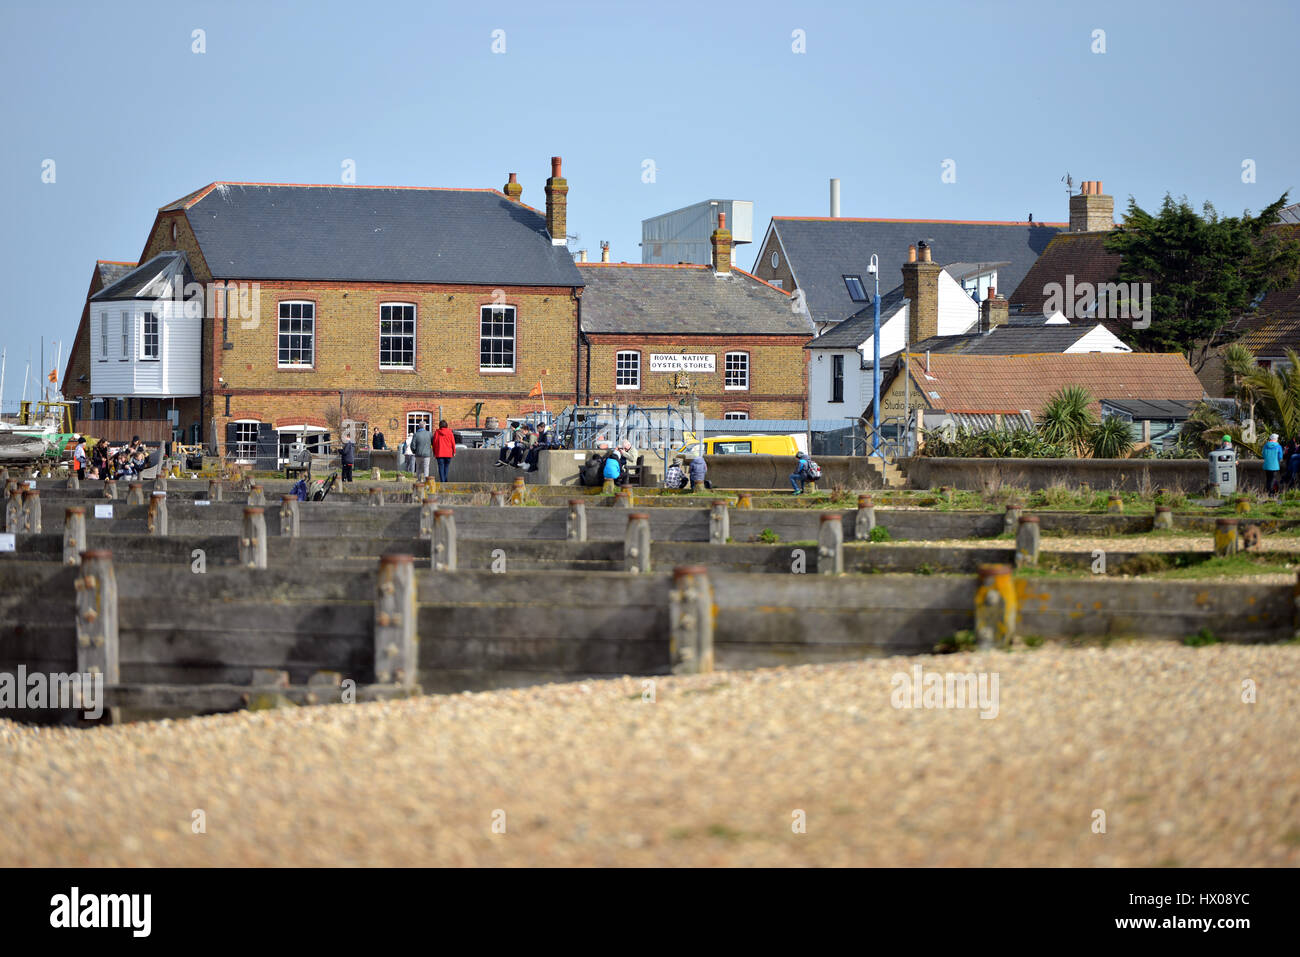 Whitstable Oyster Fishery company, Kent - Stock Image